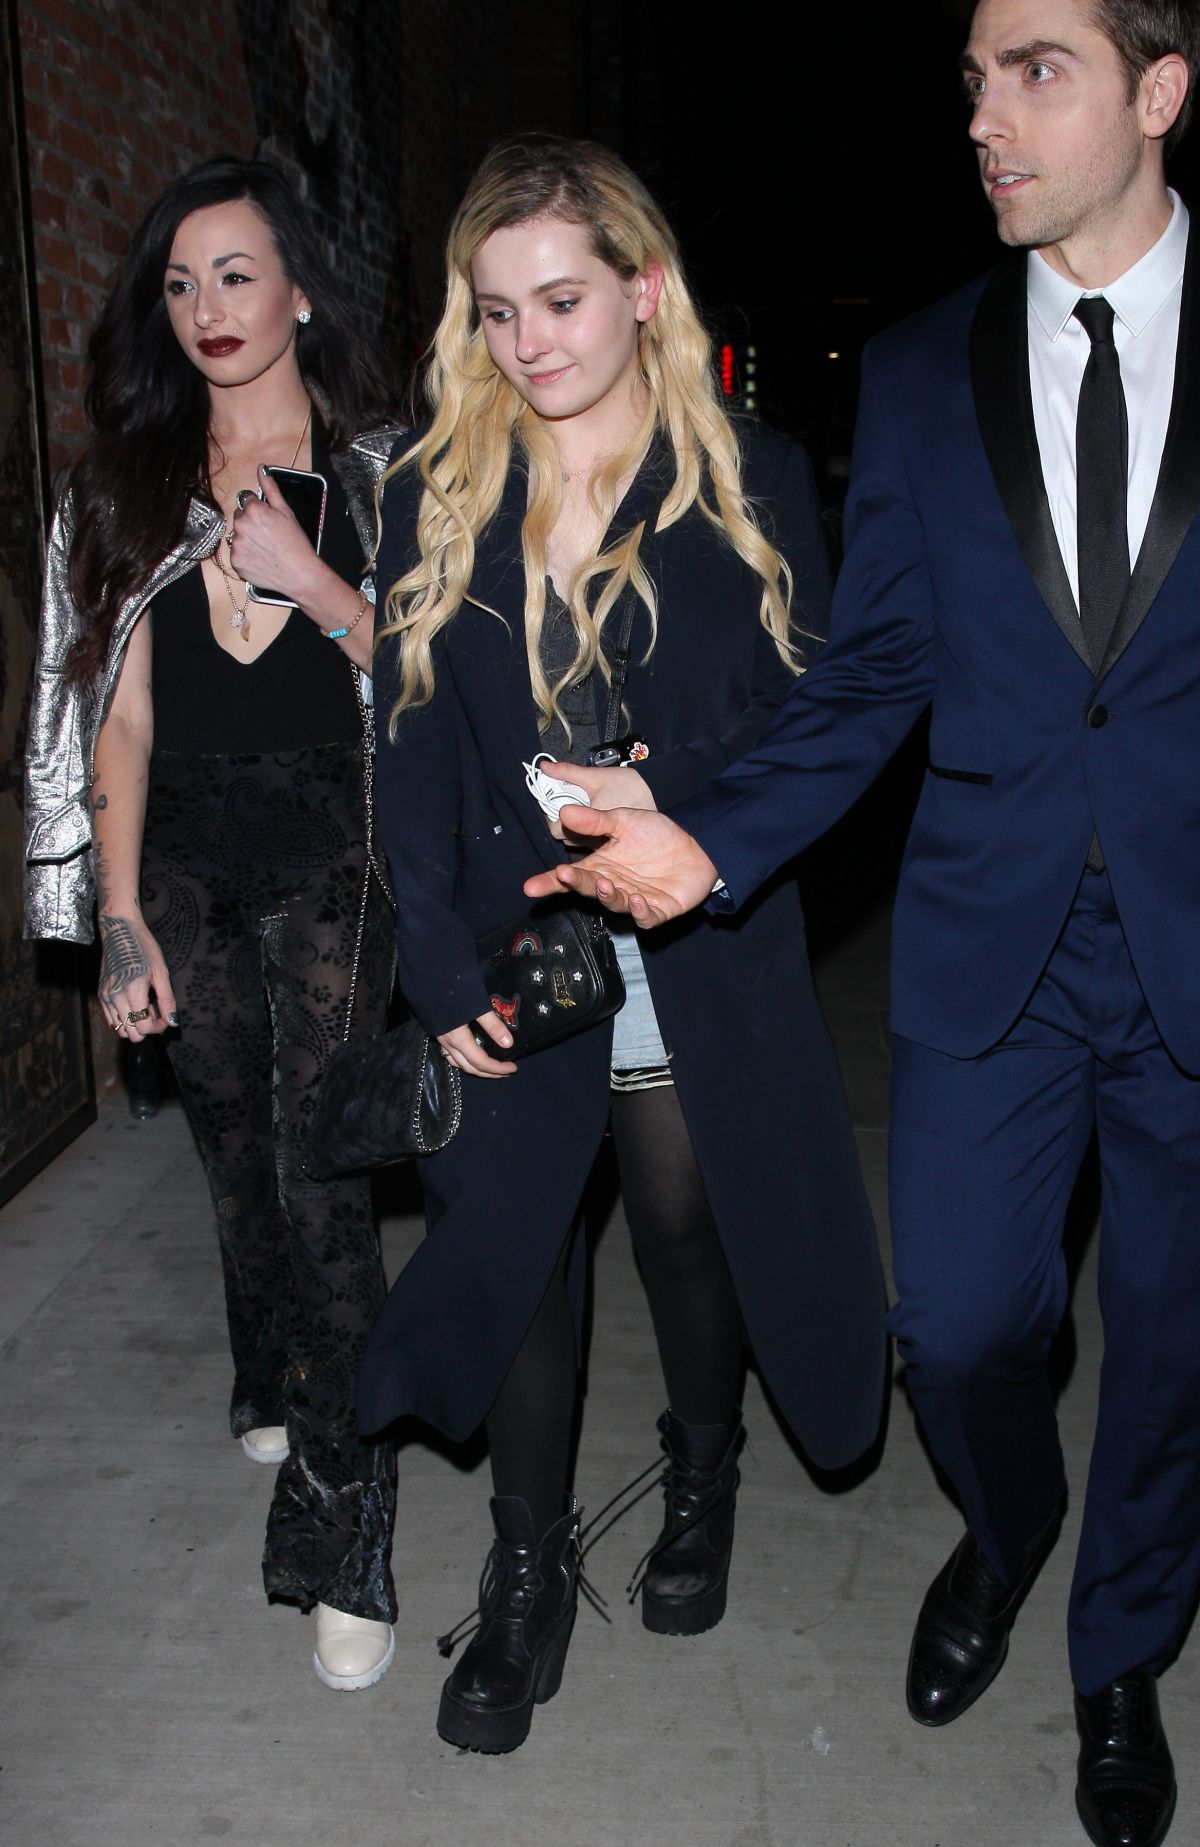 ABIGAIL BRESLIN at Tao in Hollywood 05/18/2017